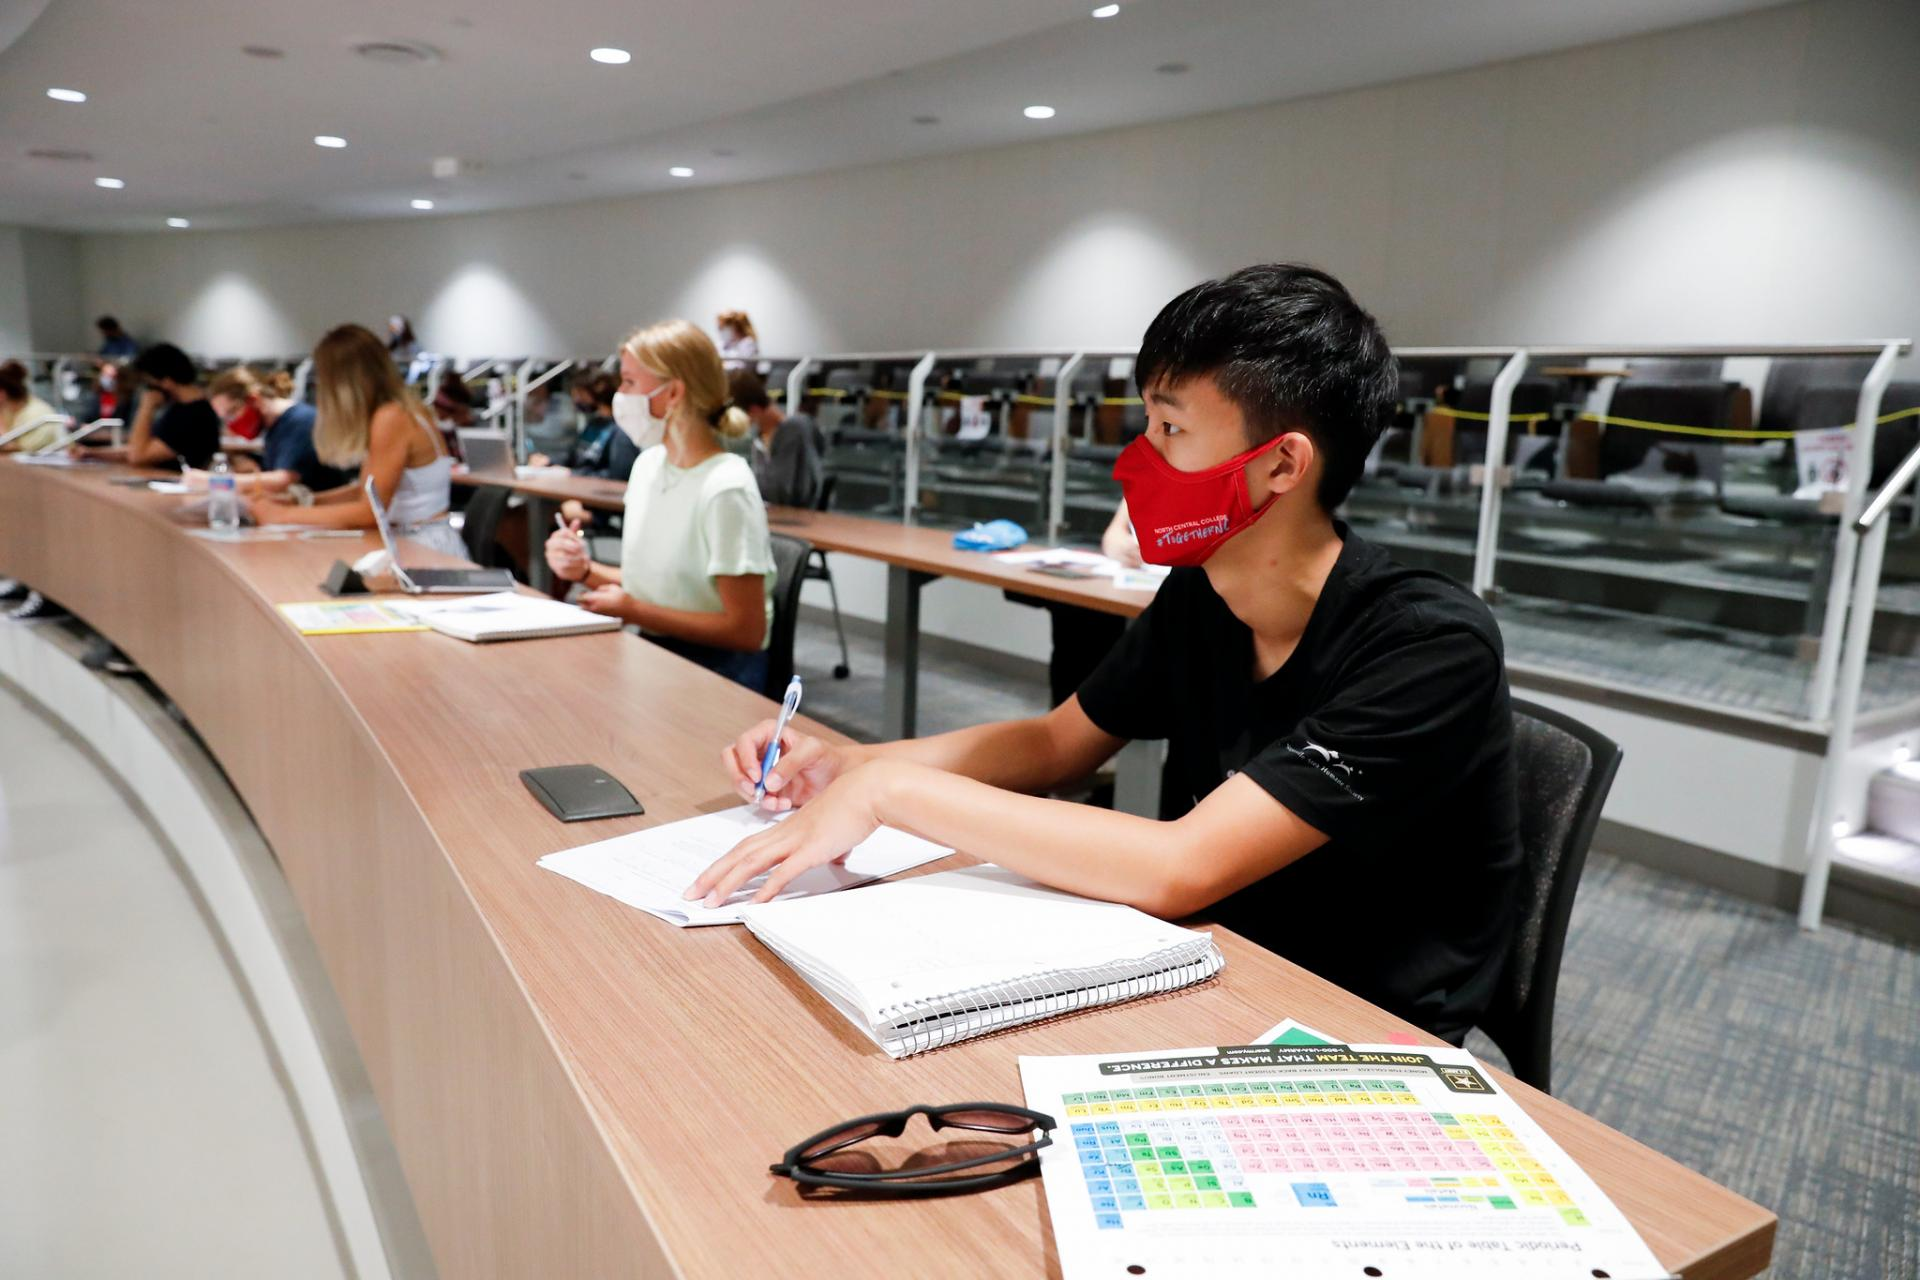 Lecture hall of North Central College students wearing facial masks due to COVID-19